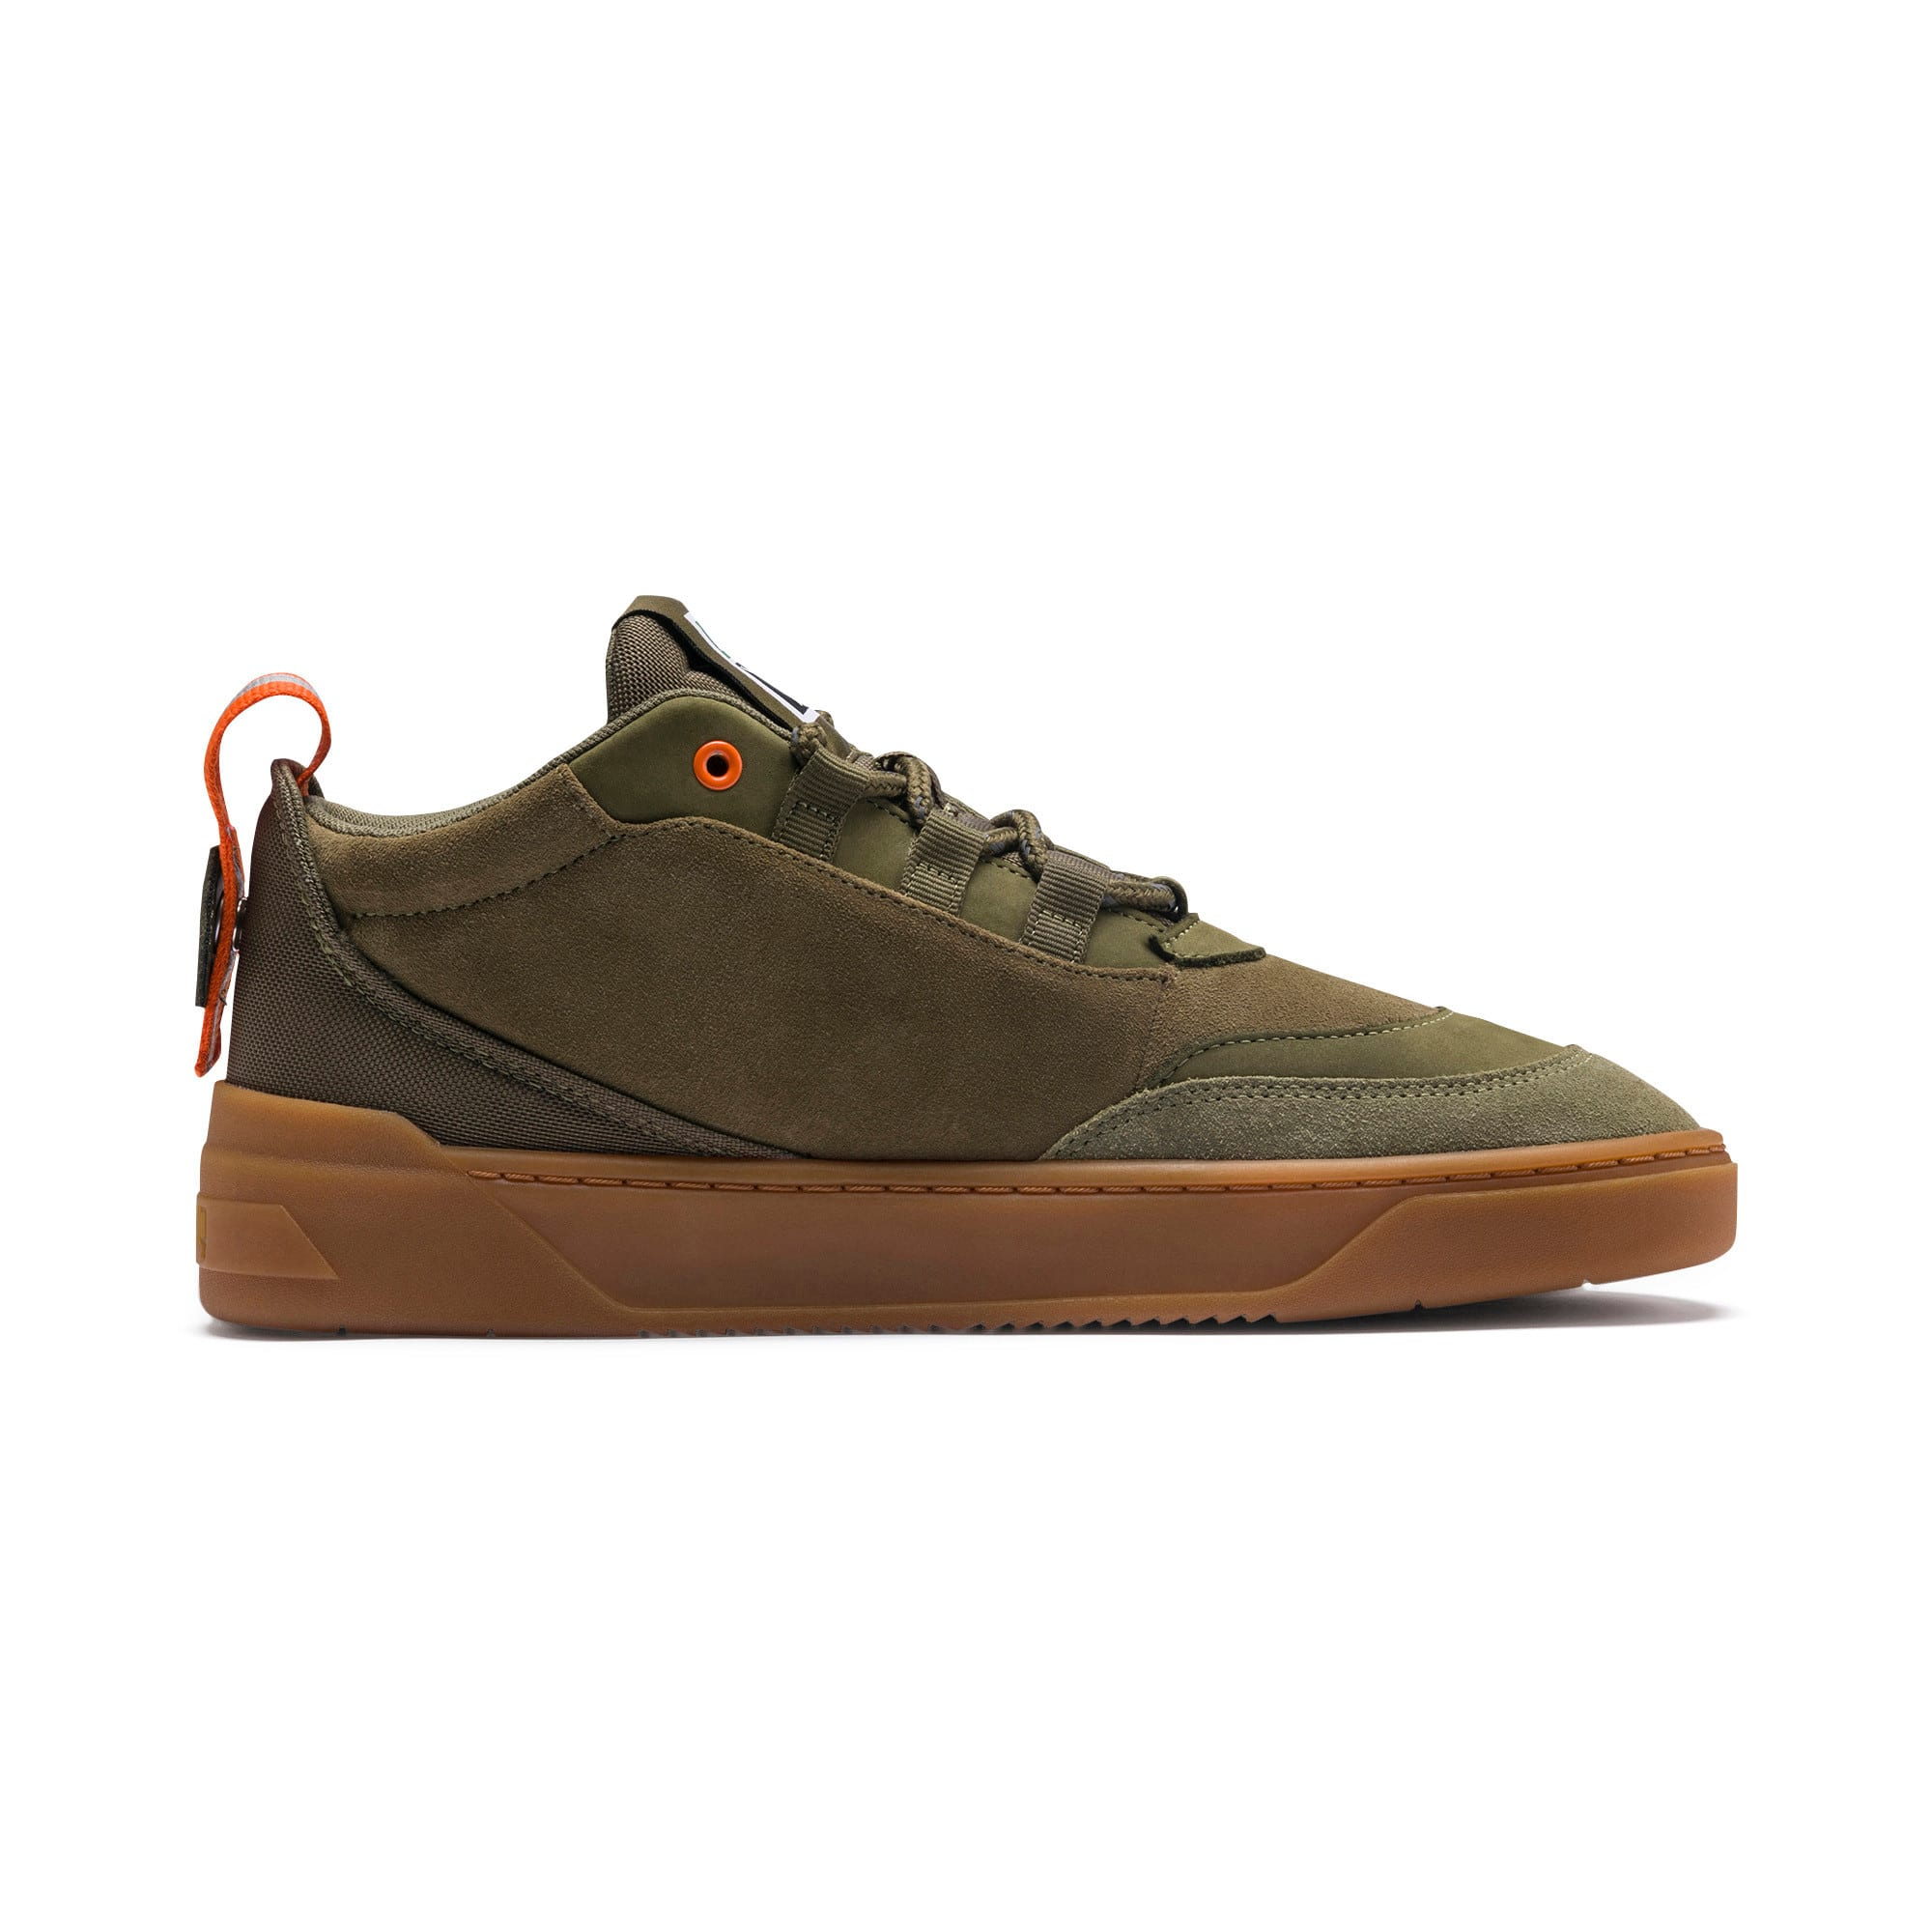 Thumbnail 5 of Cali Zero Demi Army Green Sneakers, Capulet Olive-Burnt Olive, medium